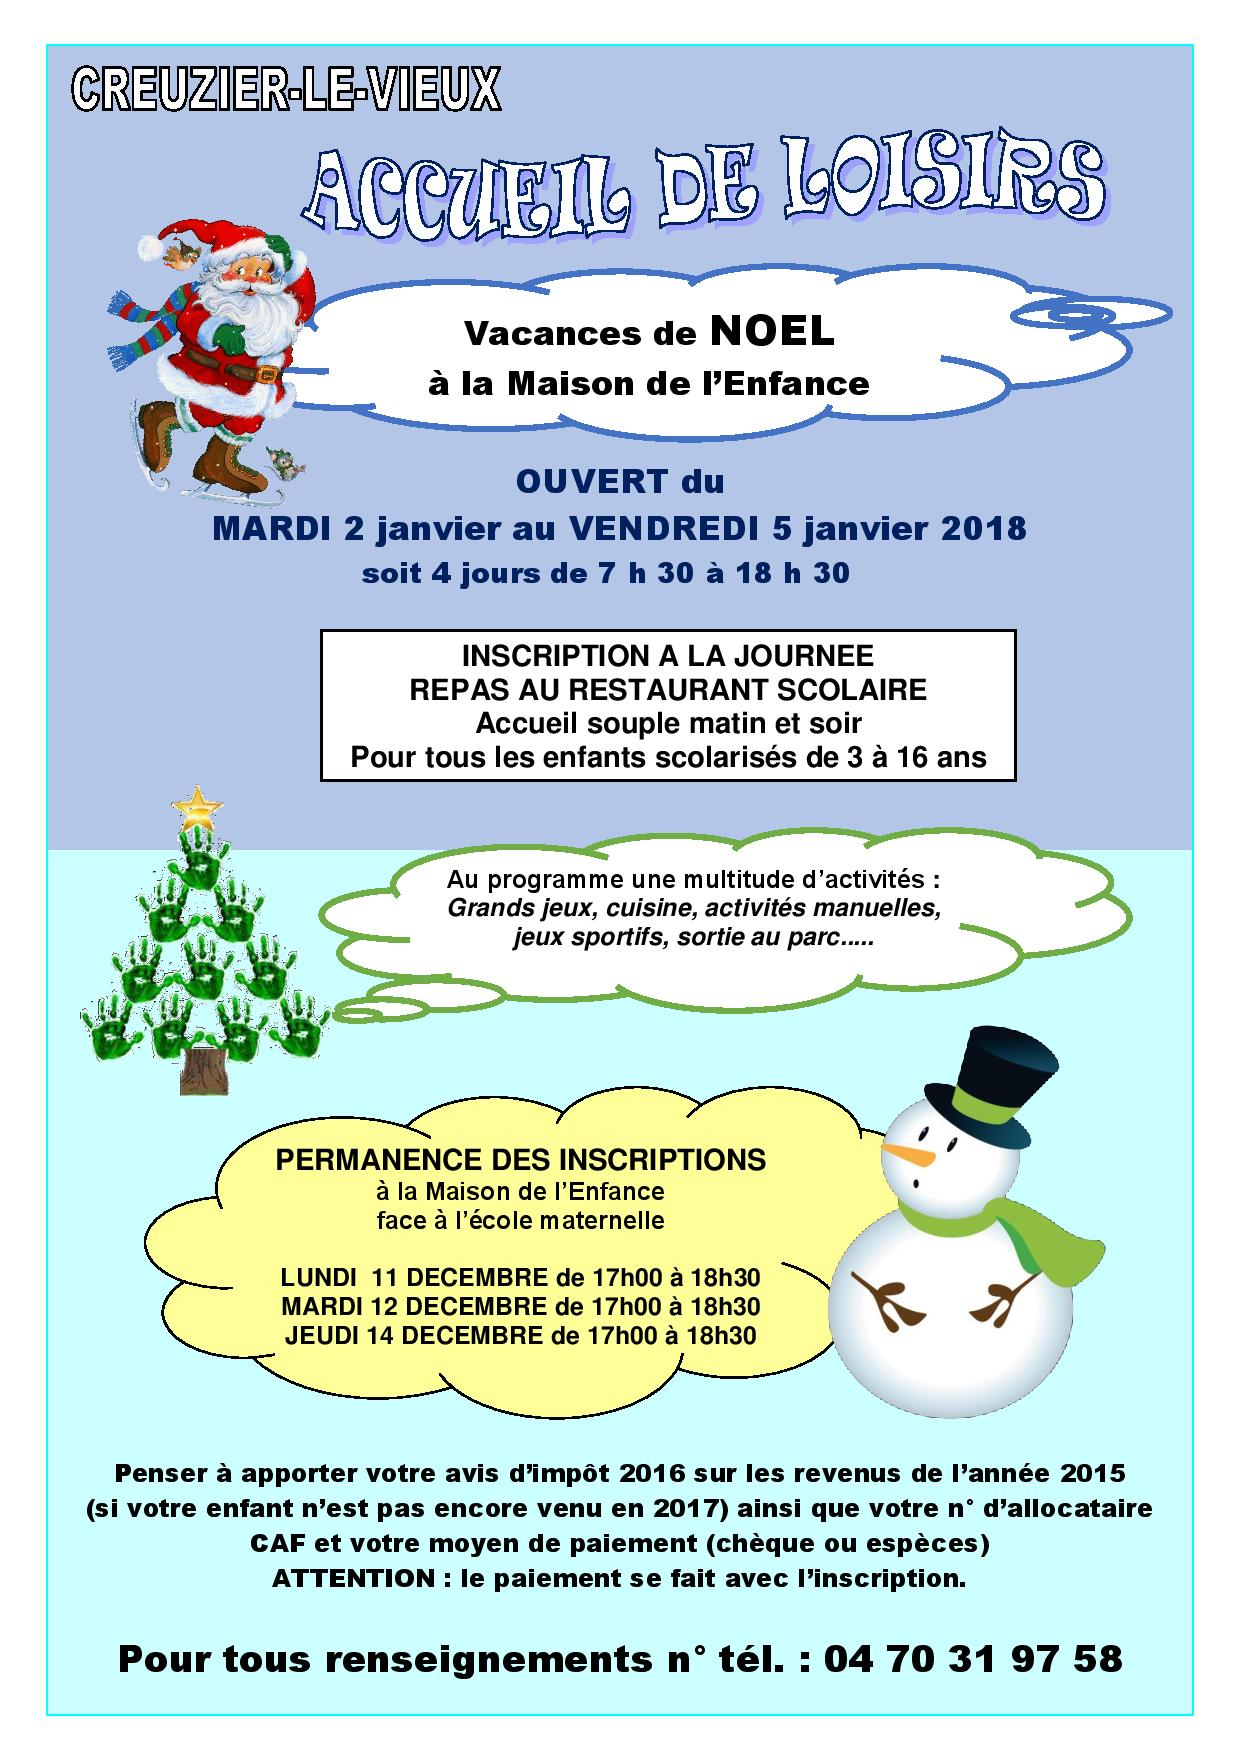 vces NOEL 2017-page-001-1 (2)